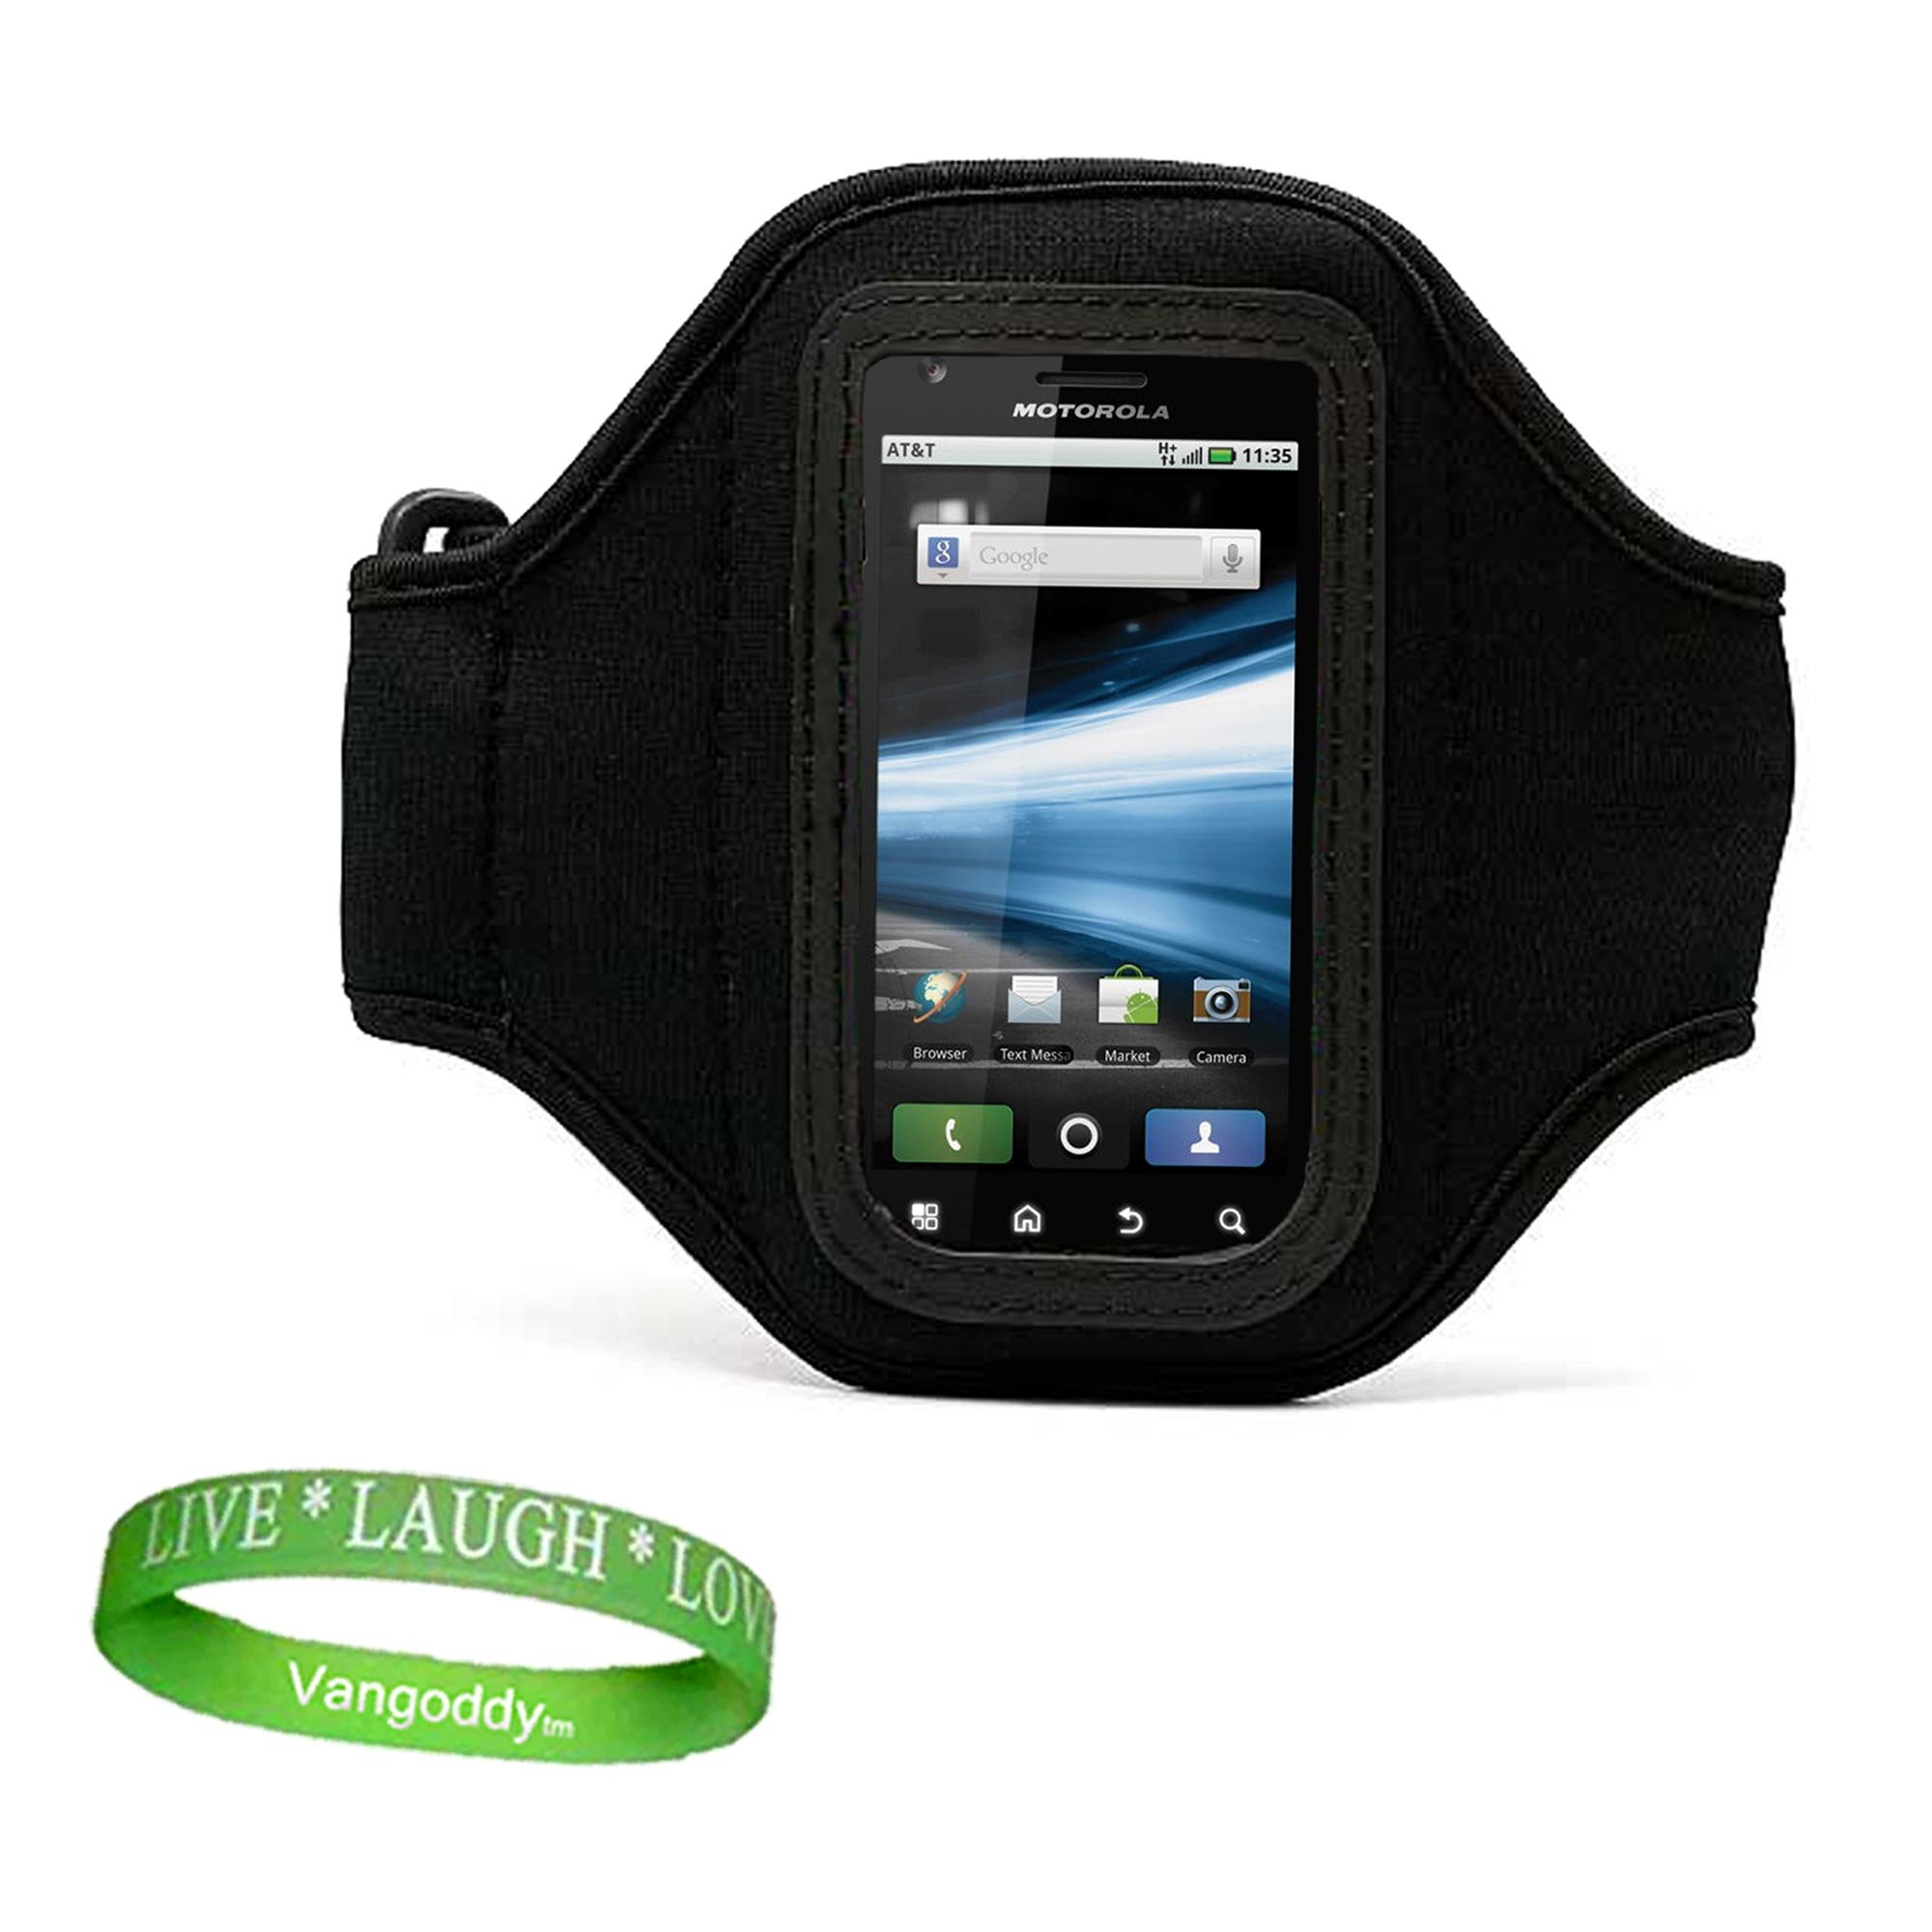 Quality BLACK Motorola Photon 4G Armband with Sweat Resistant lining for Photon 4G (Sprint) Android Phone + Live * Laugh * Love VanGoddy Wrist Band!!!